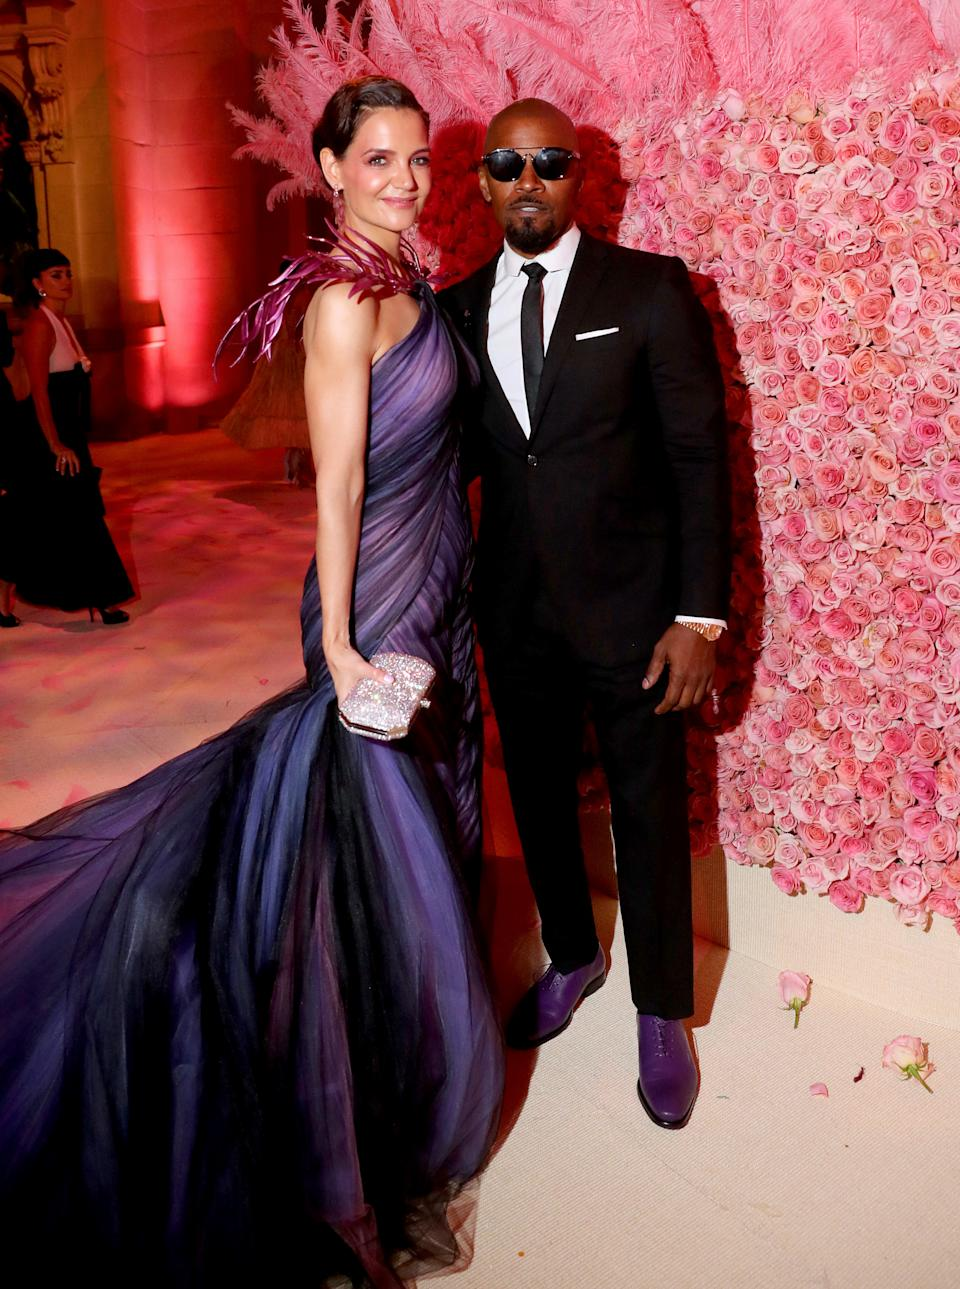 Katie Holmes and Jamie Foxx pictured in May in New York City. (Photo: Kevin Tachman/MG19/Getty Images for The Met Museum/Vogue)